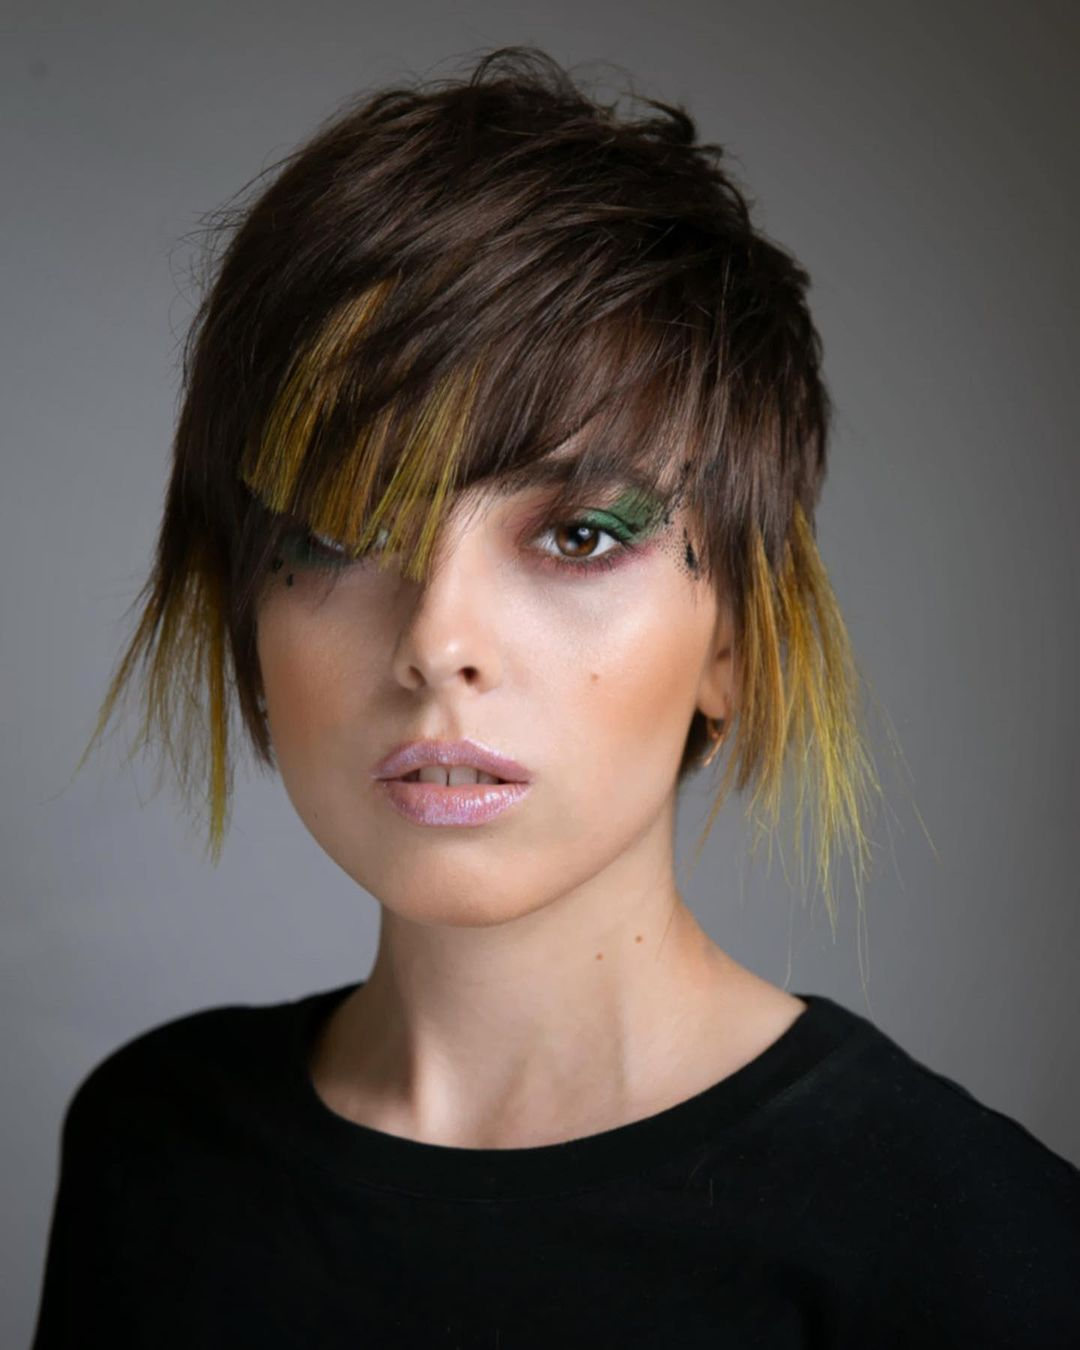 Pixie Haircuts for Women Over 50 06